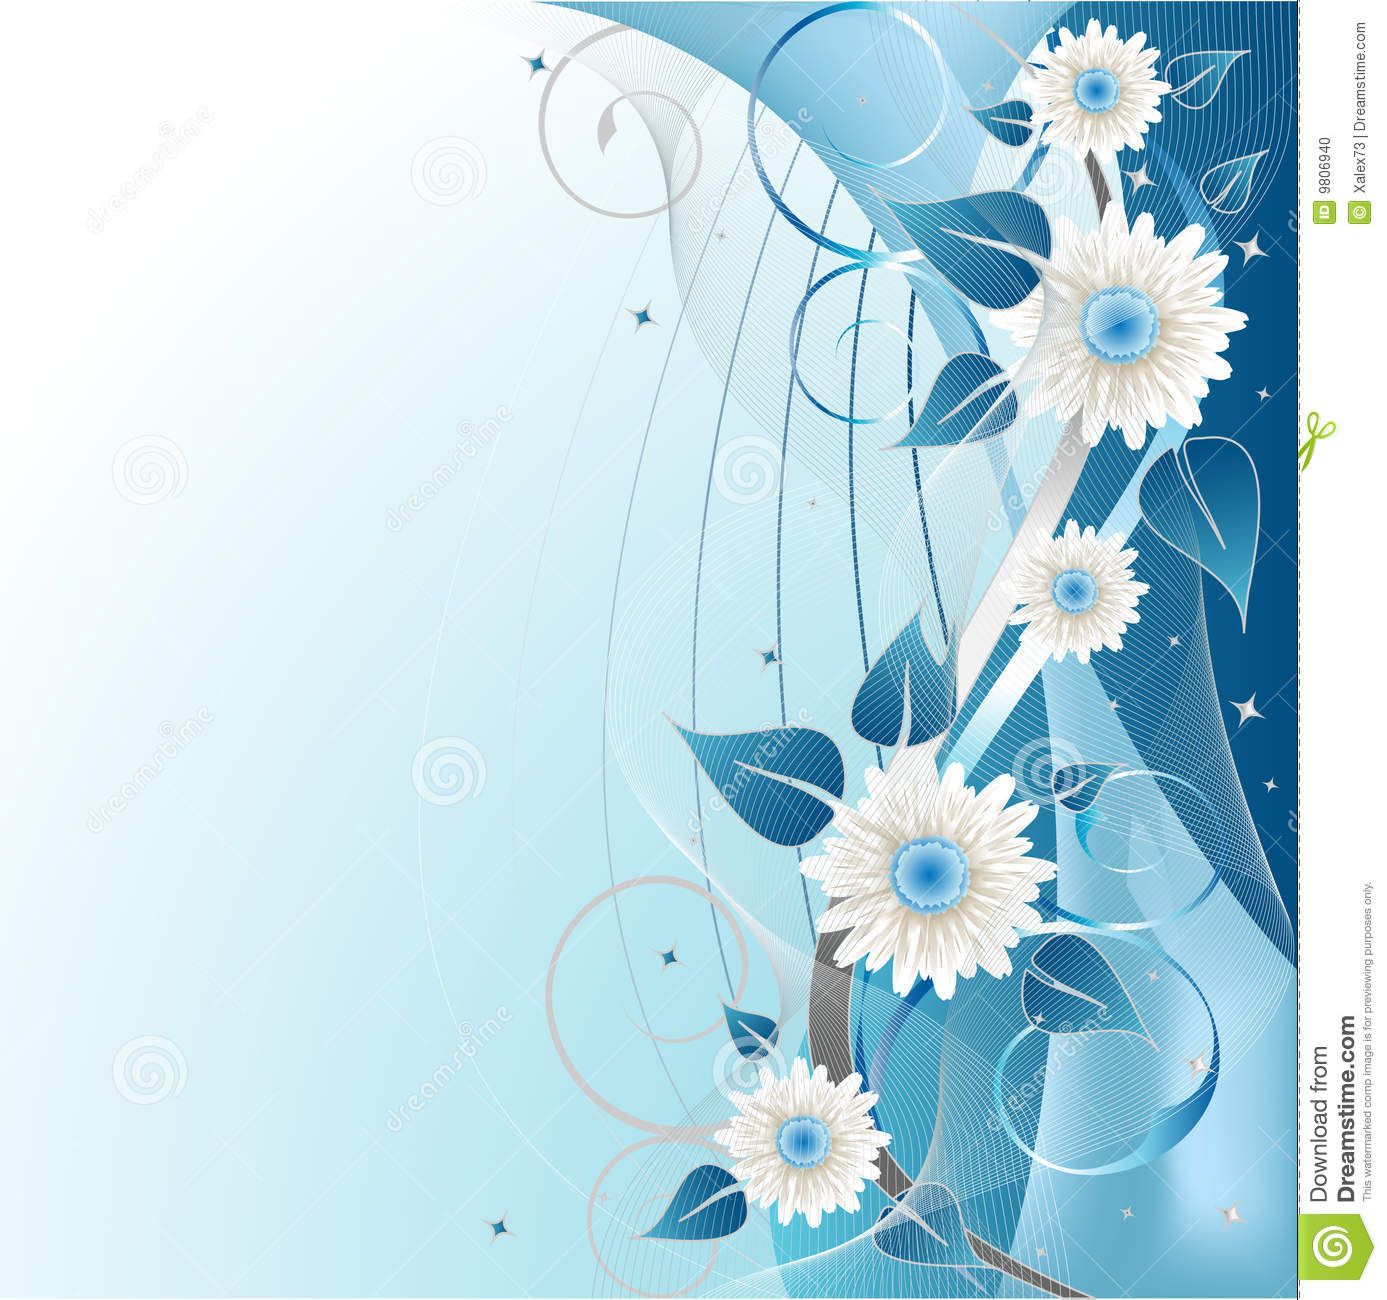 Sweet Cute Wallpapers Of Flowers Blue Floral Background Stock Vector Illustration Of